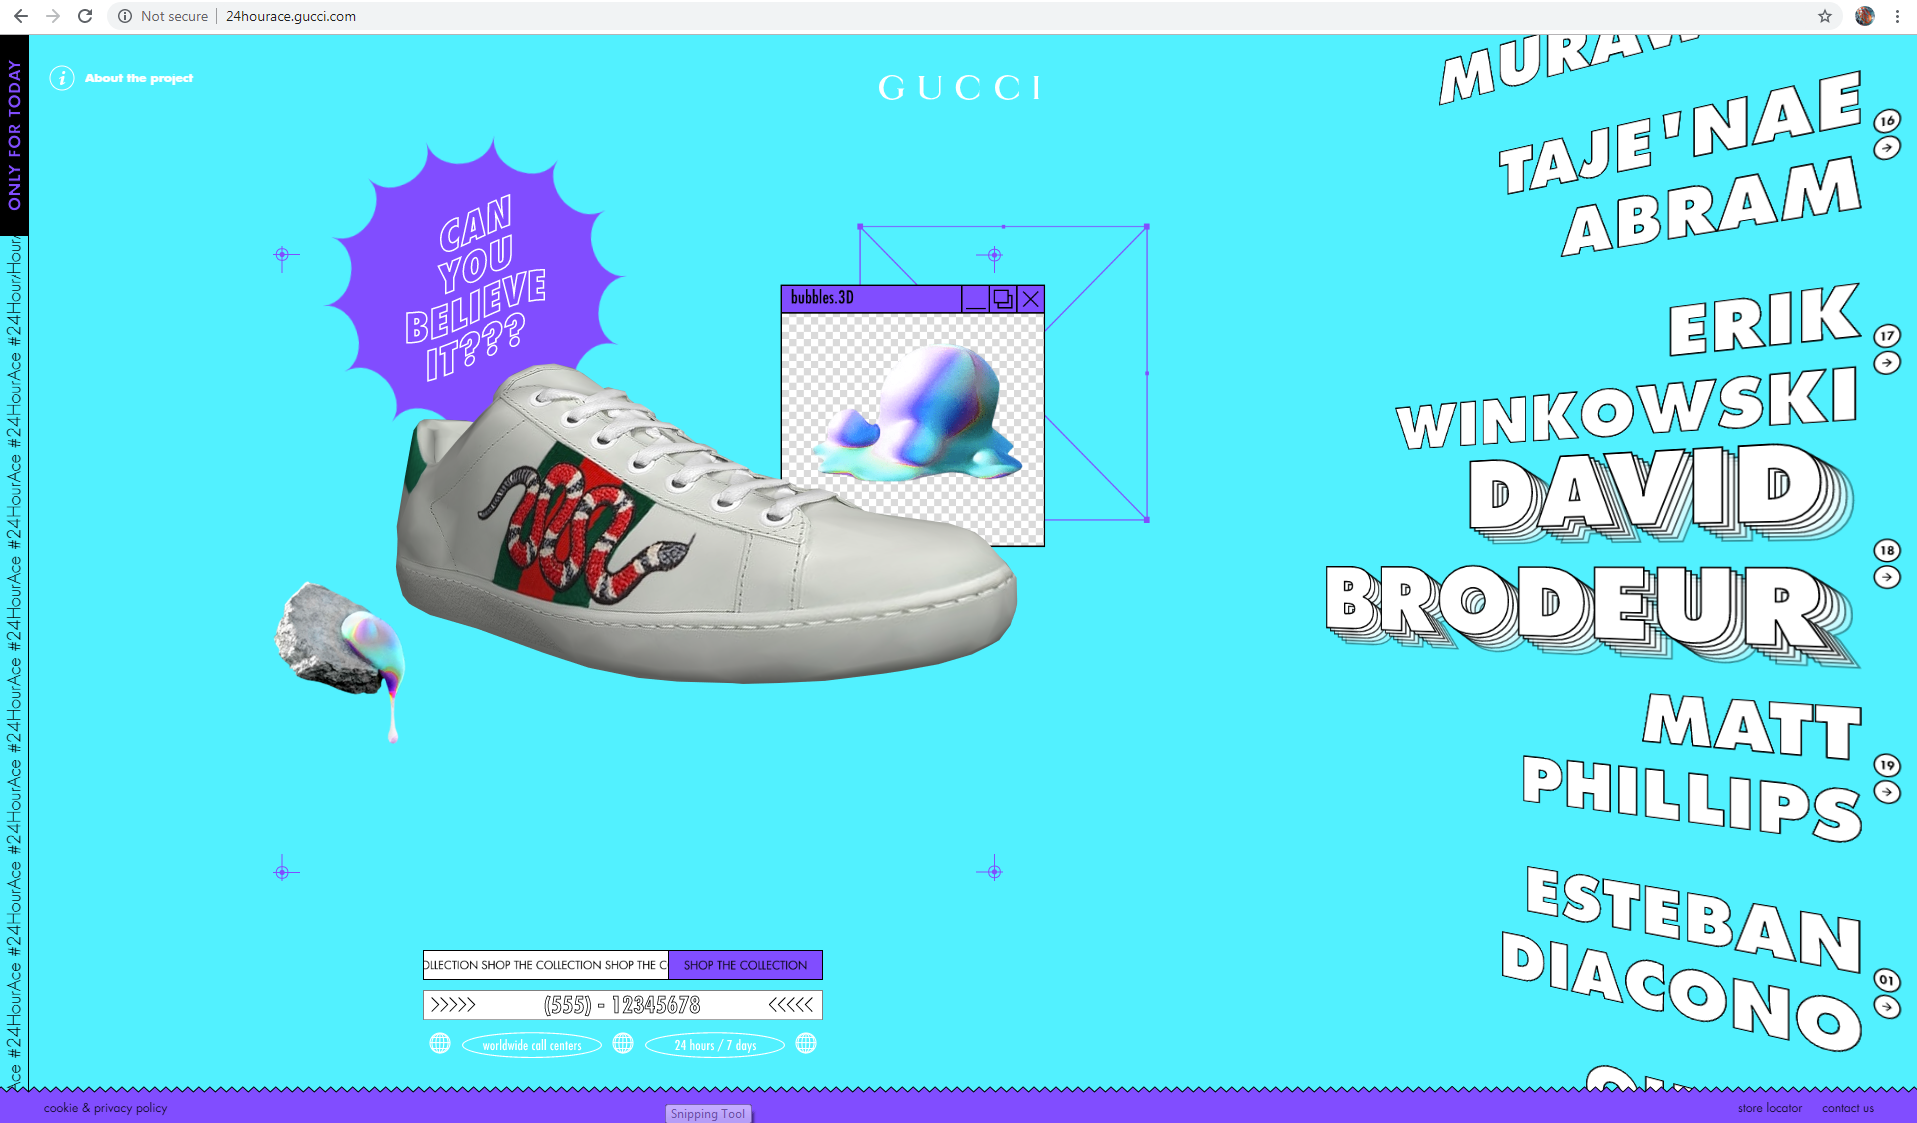 gucci_site_01.PNG